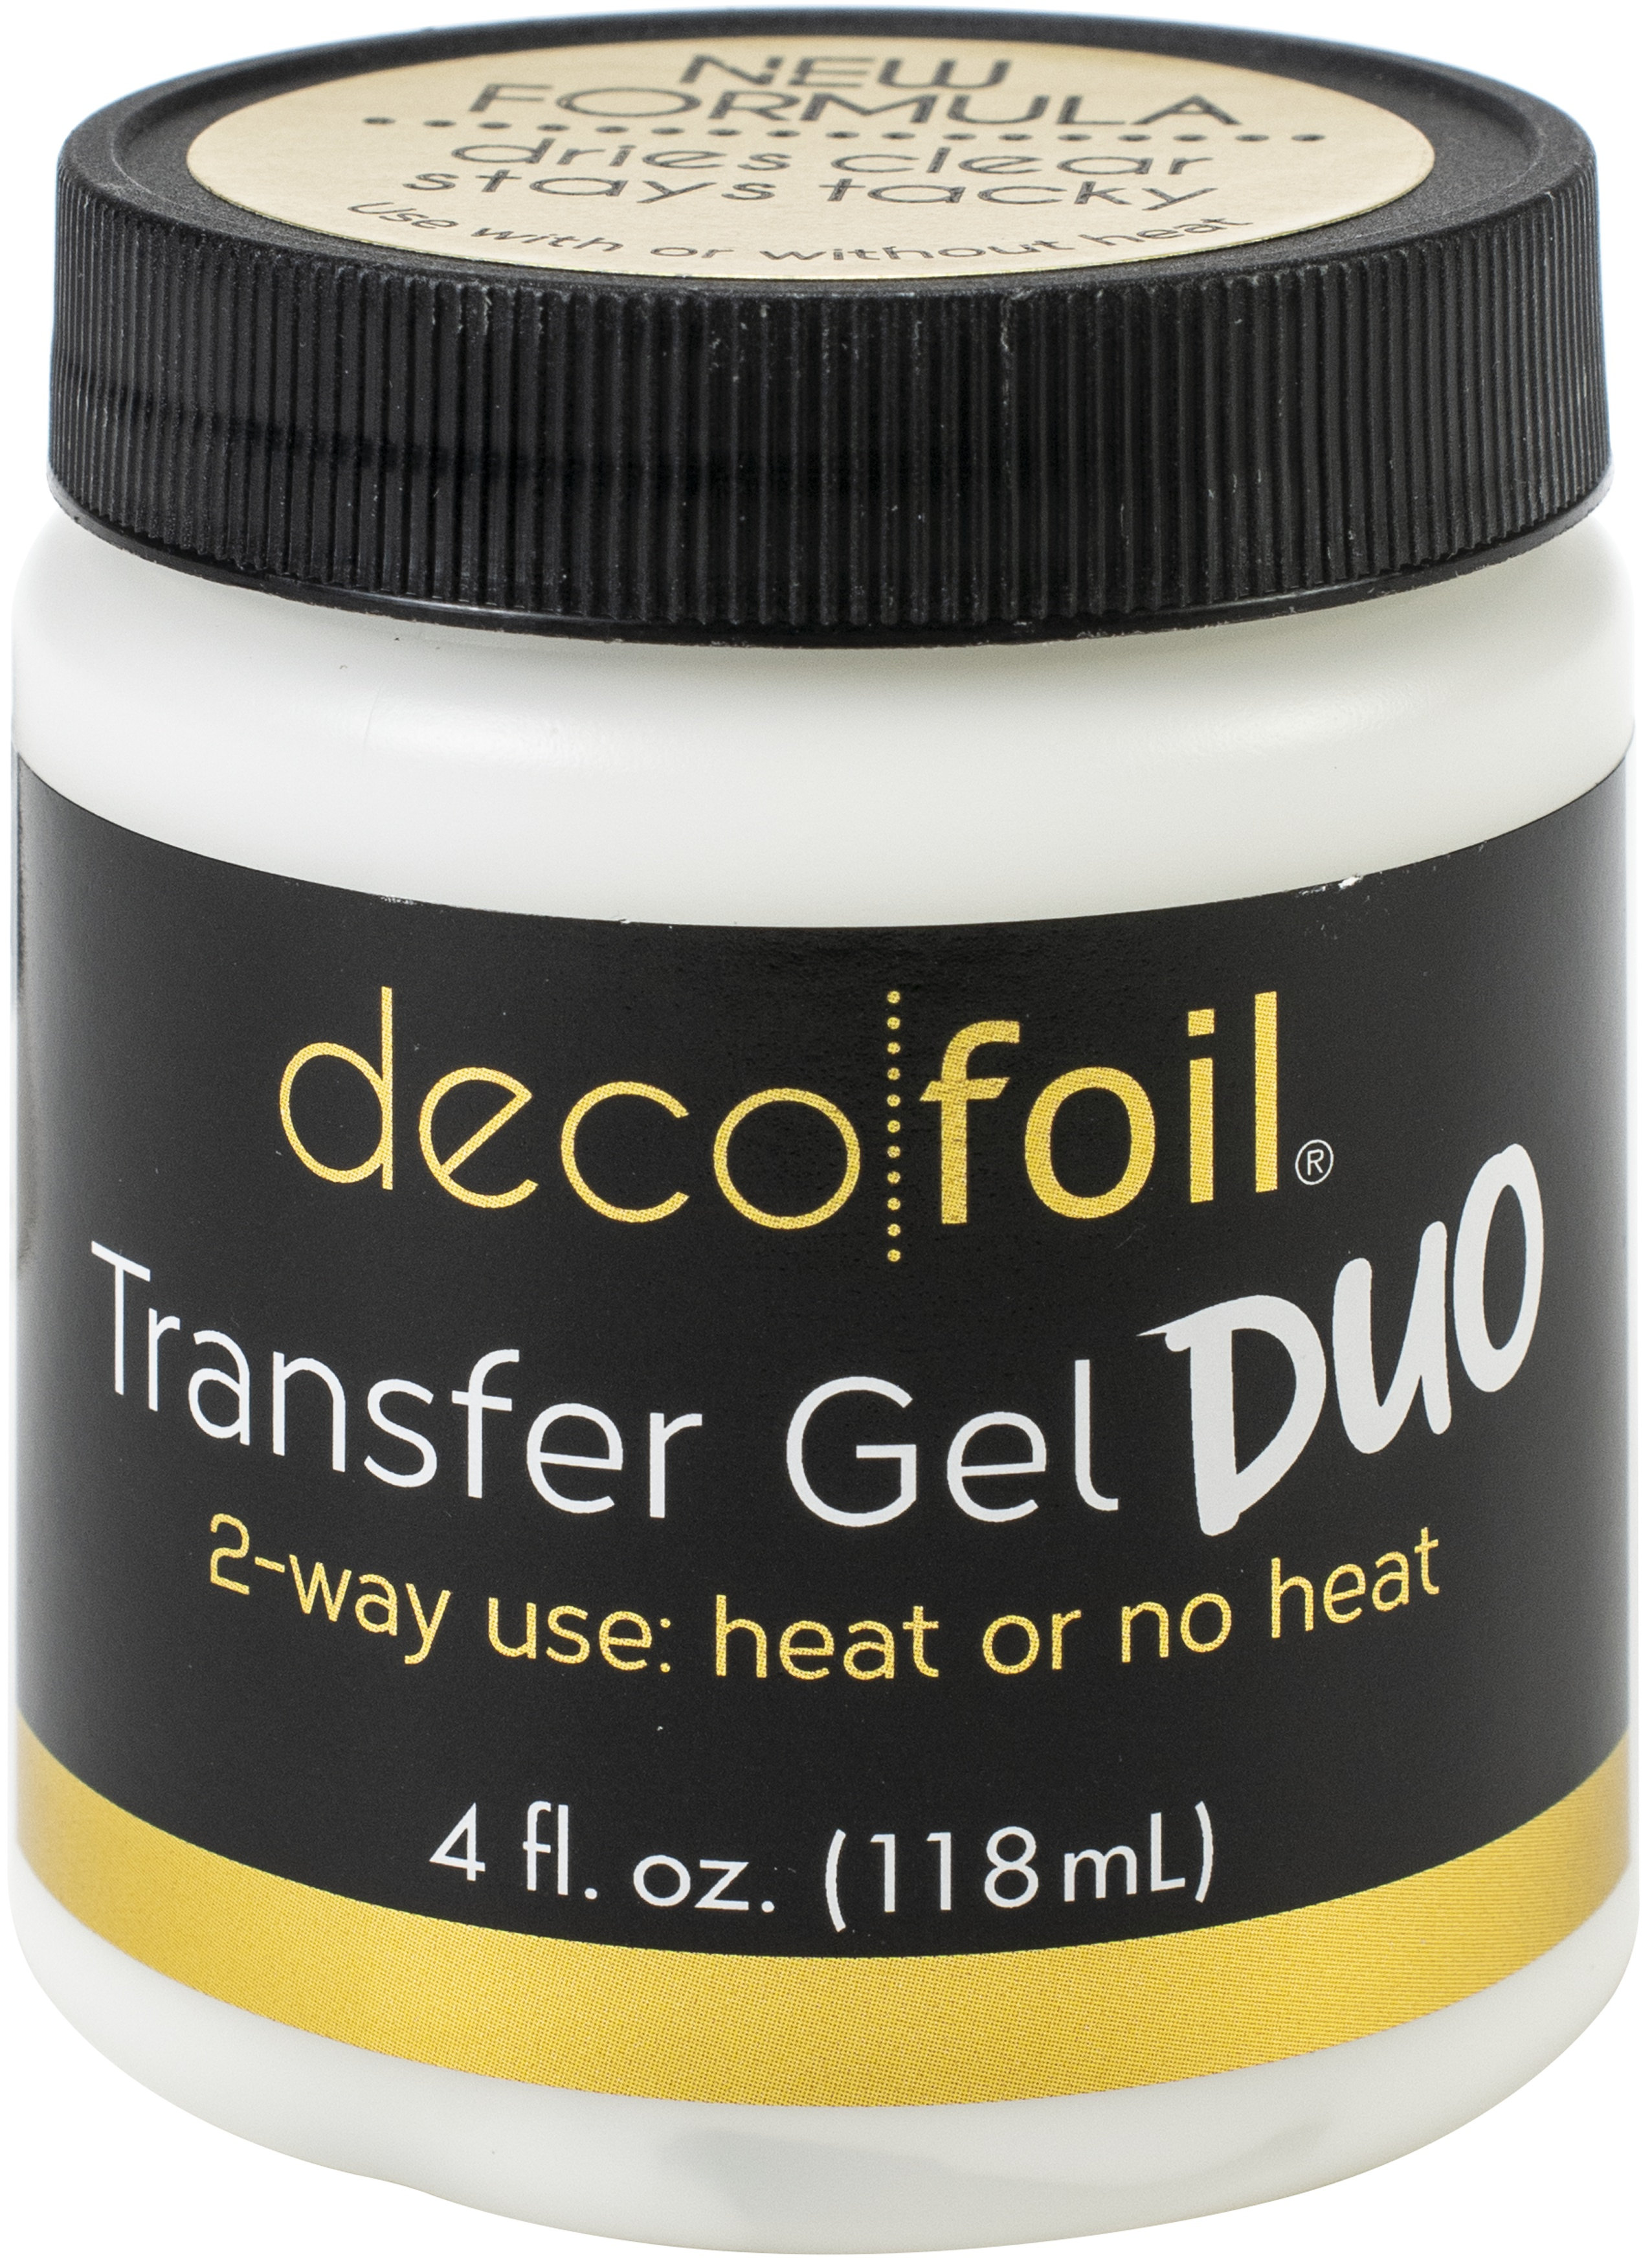 Deco Foil Transfer Gel DUO 4Fl Oz-